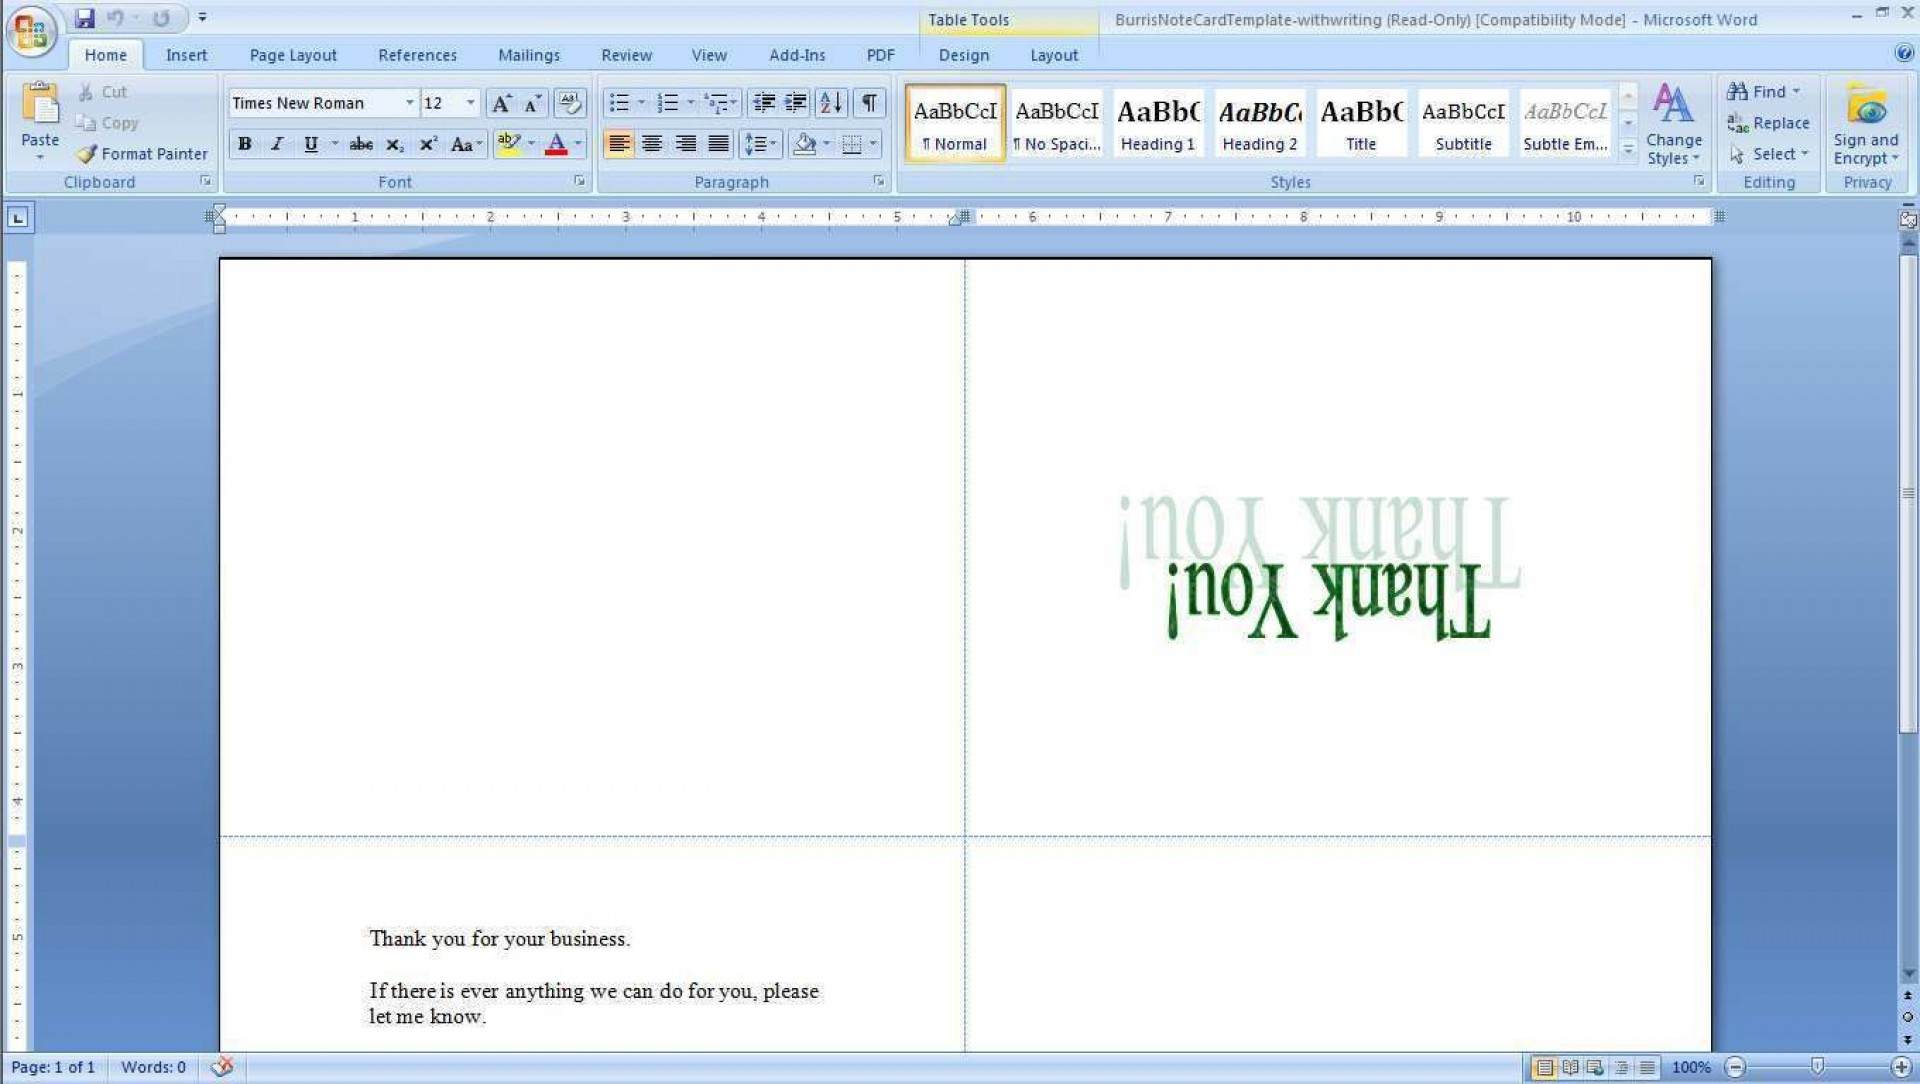 002 Marvelou Microsoft Word Greeting Card Template Highest Clarity  2003 Birthday Download1920